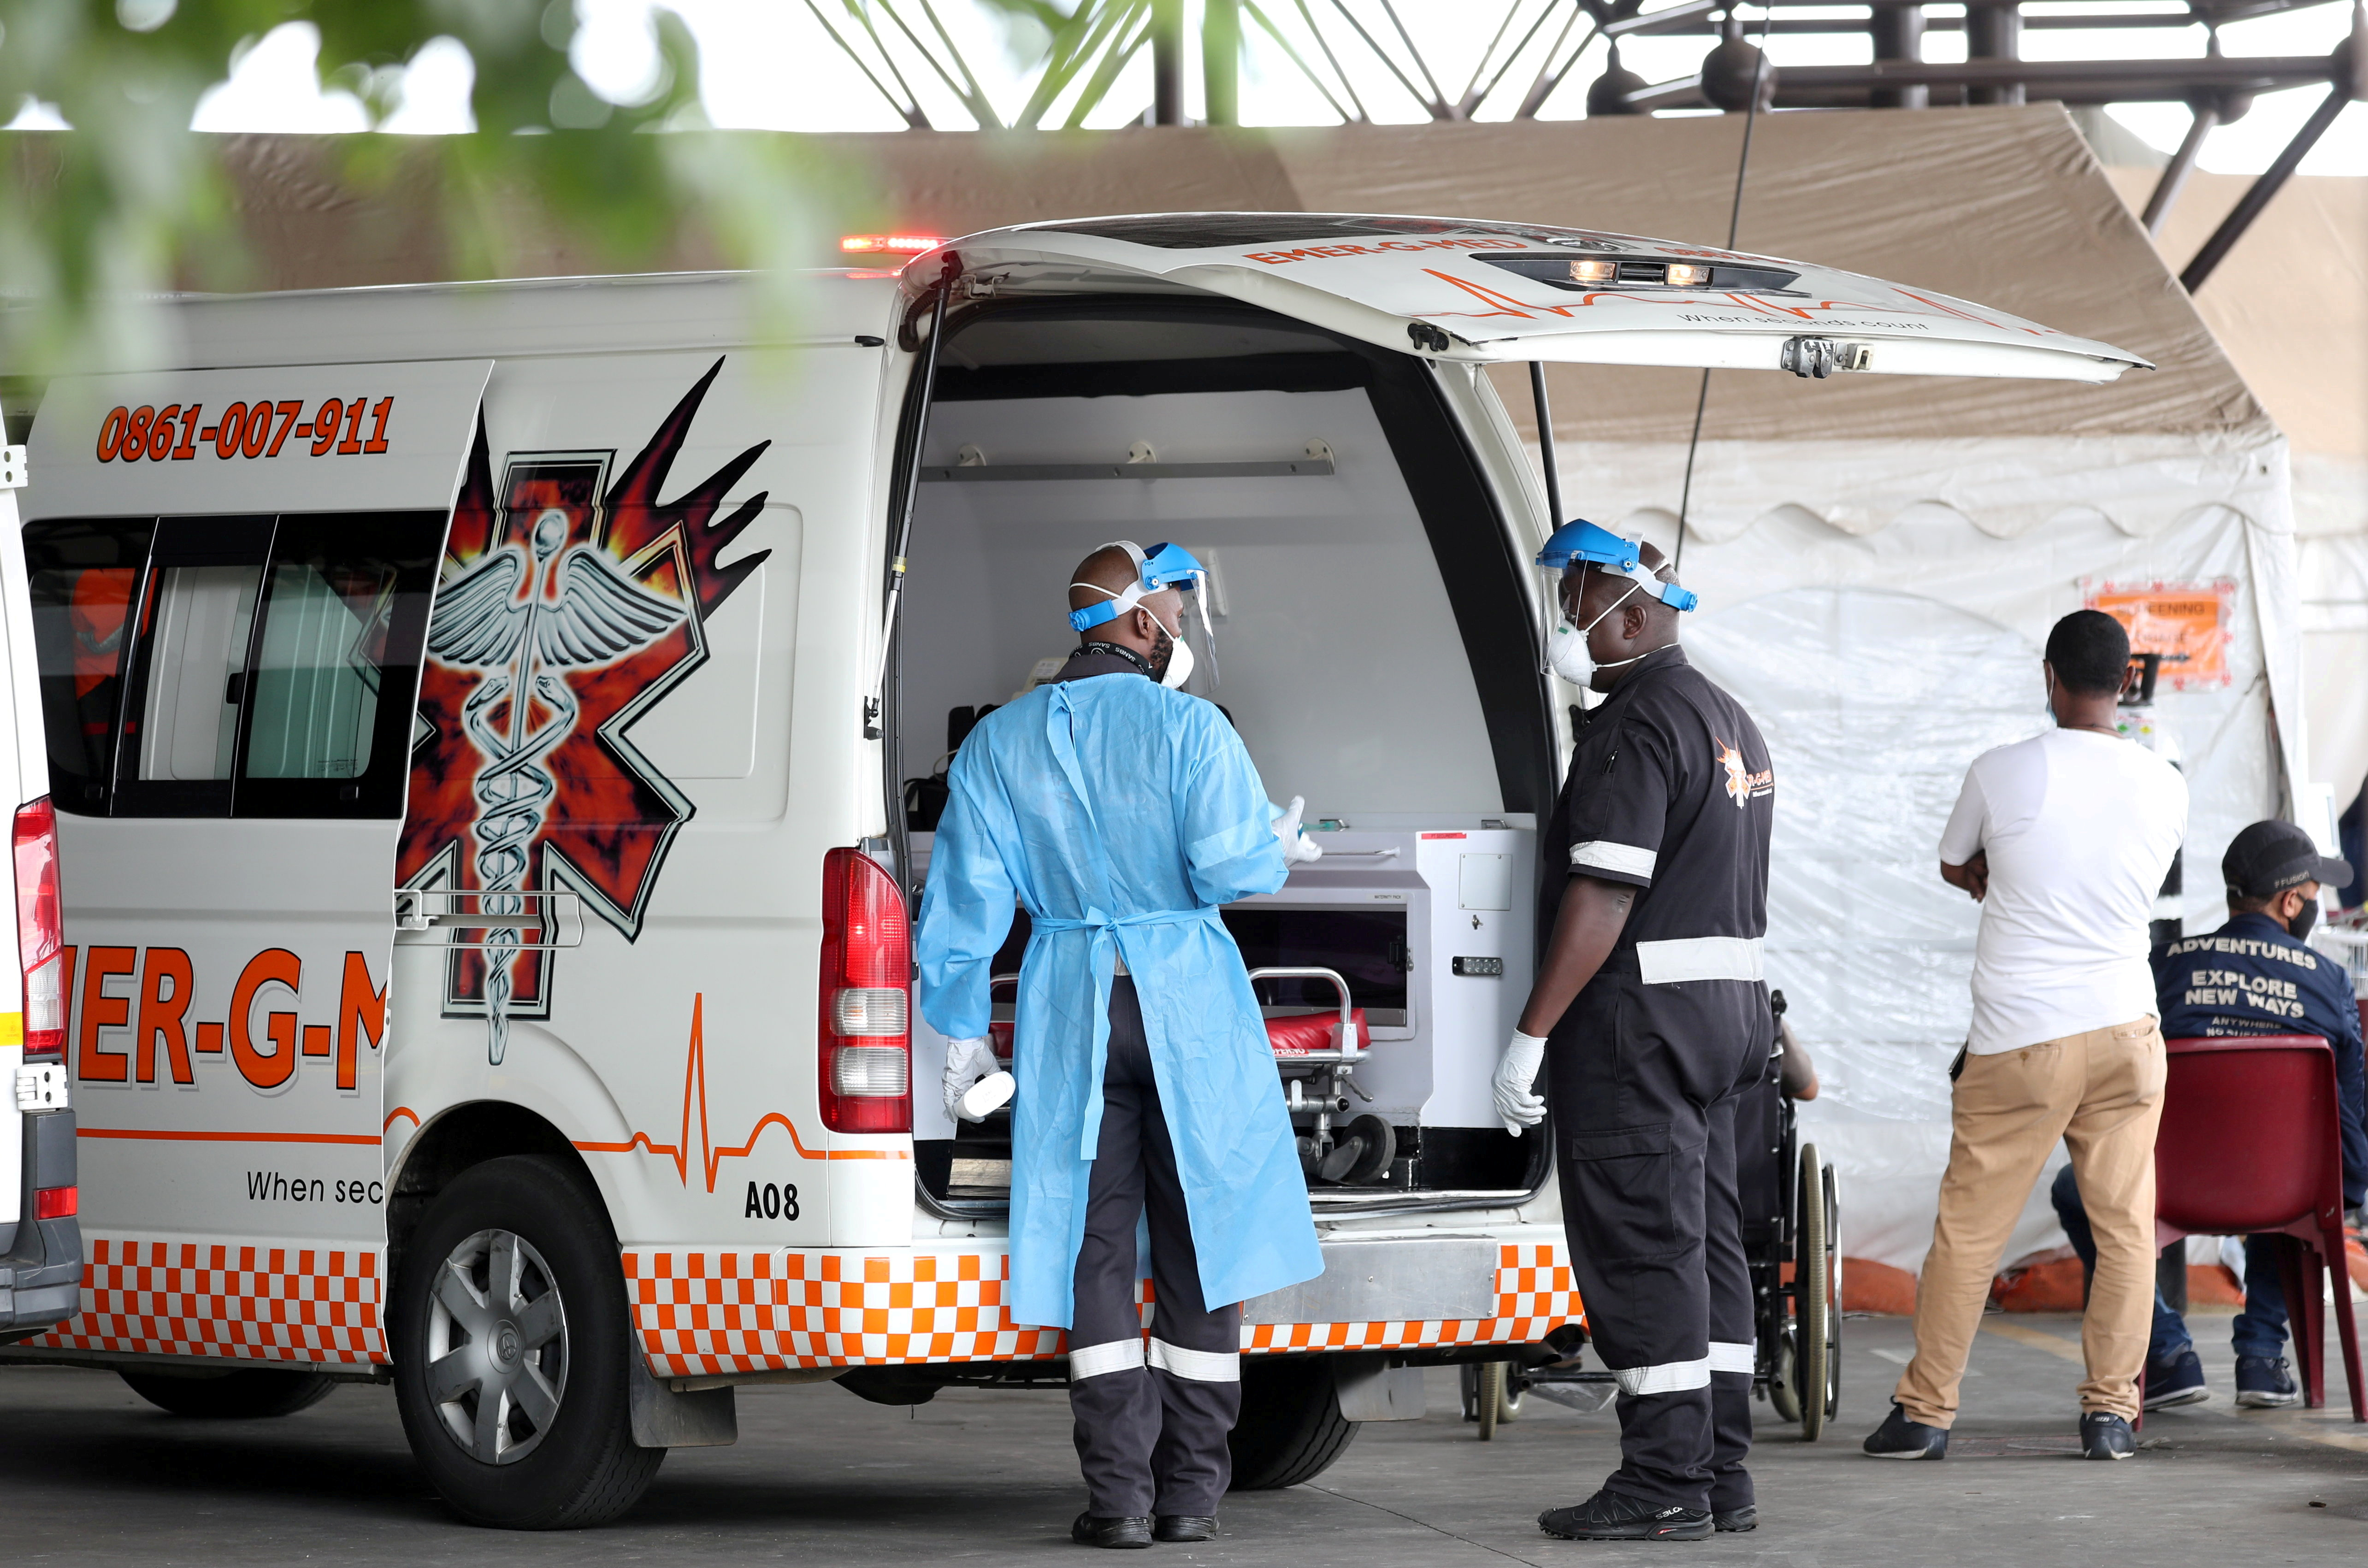 Health workers chat near an ambulance  at the parking lot of the Steve Biko Academic Hospital, amid a nationwide coronavirus disease (COVID-19) lockdown, in Pretoria, South Africa, January 11, 2021. REUTERS/Siphiwe Sibeko/File Photo